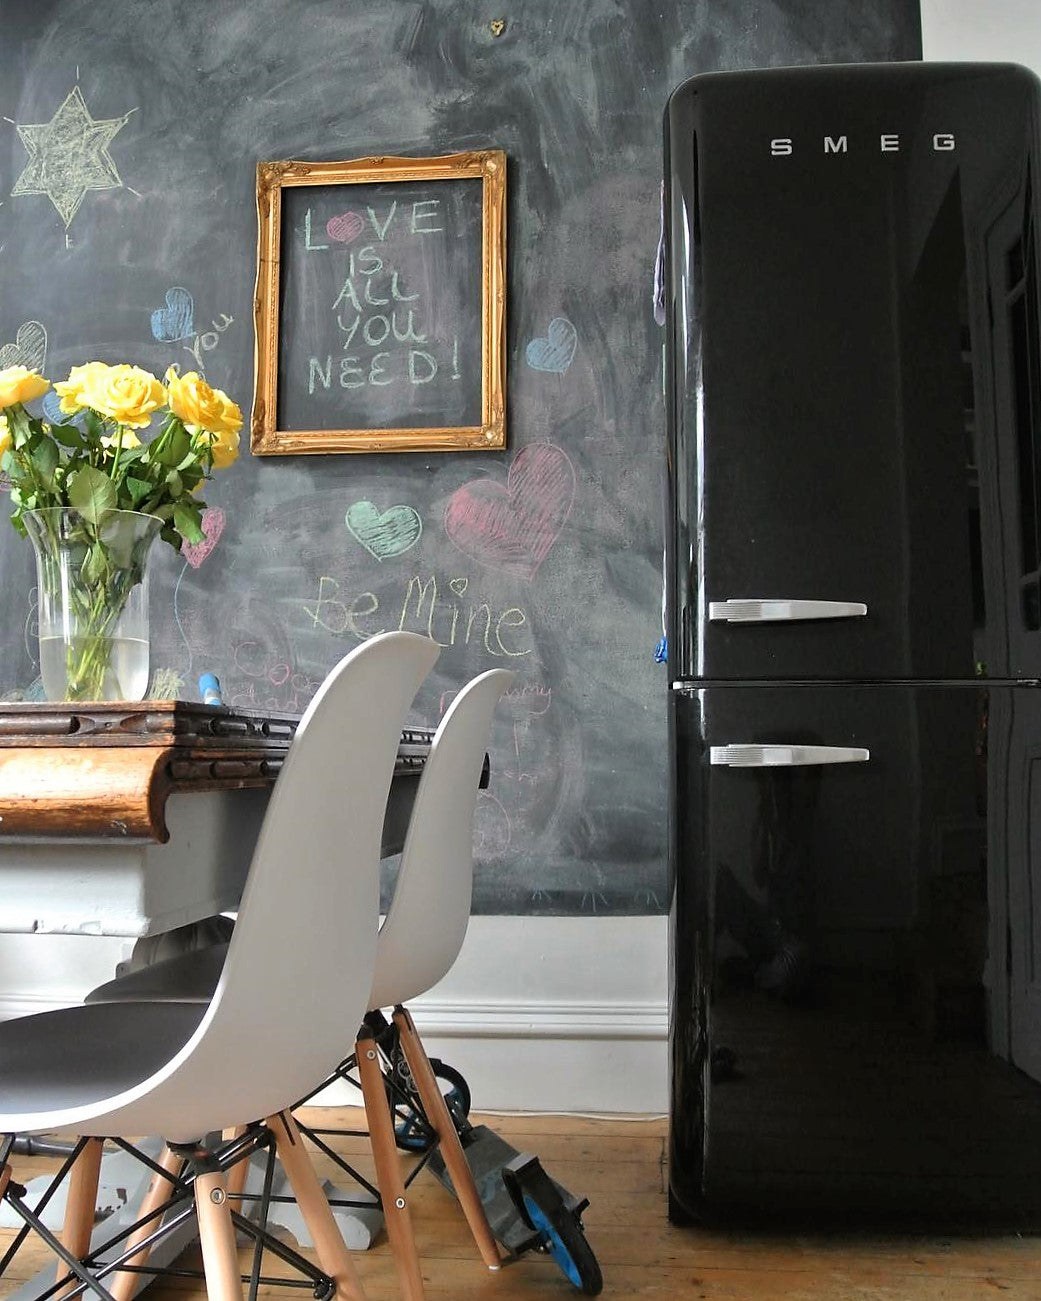 Kitchen black smeg fridge with chalkboard wall on www.lovetohome.co.uk - photo credit with permission from Claire via @houseofharwoodandrose on Instagram